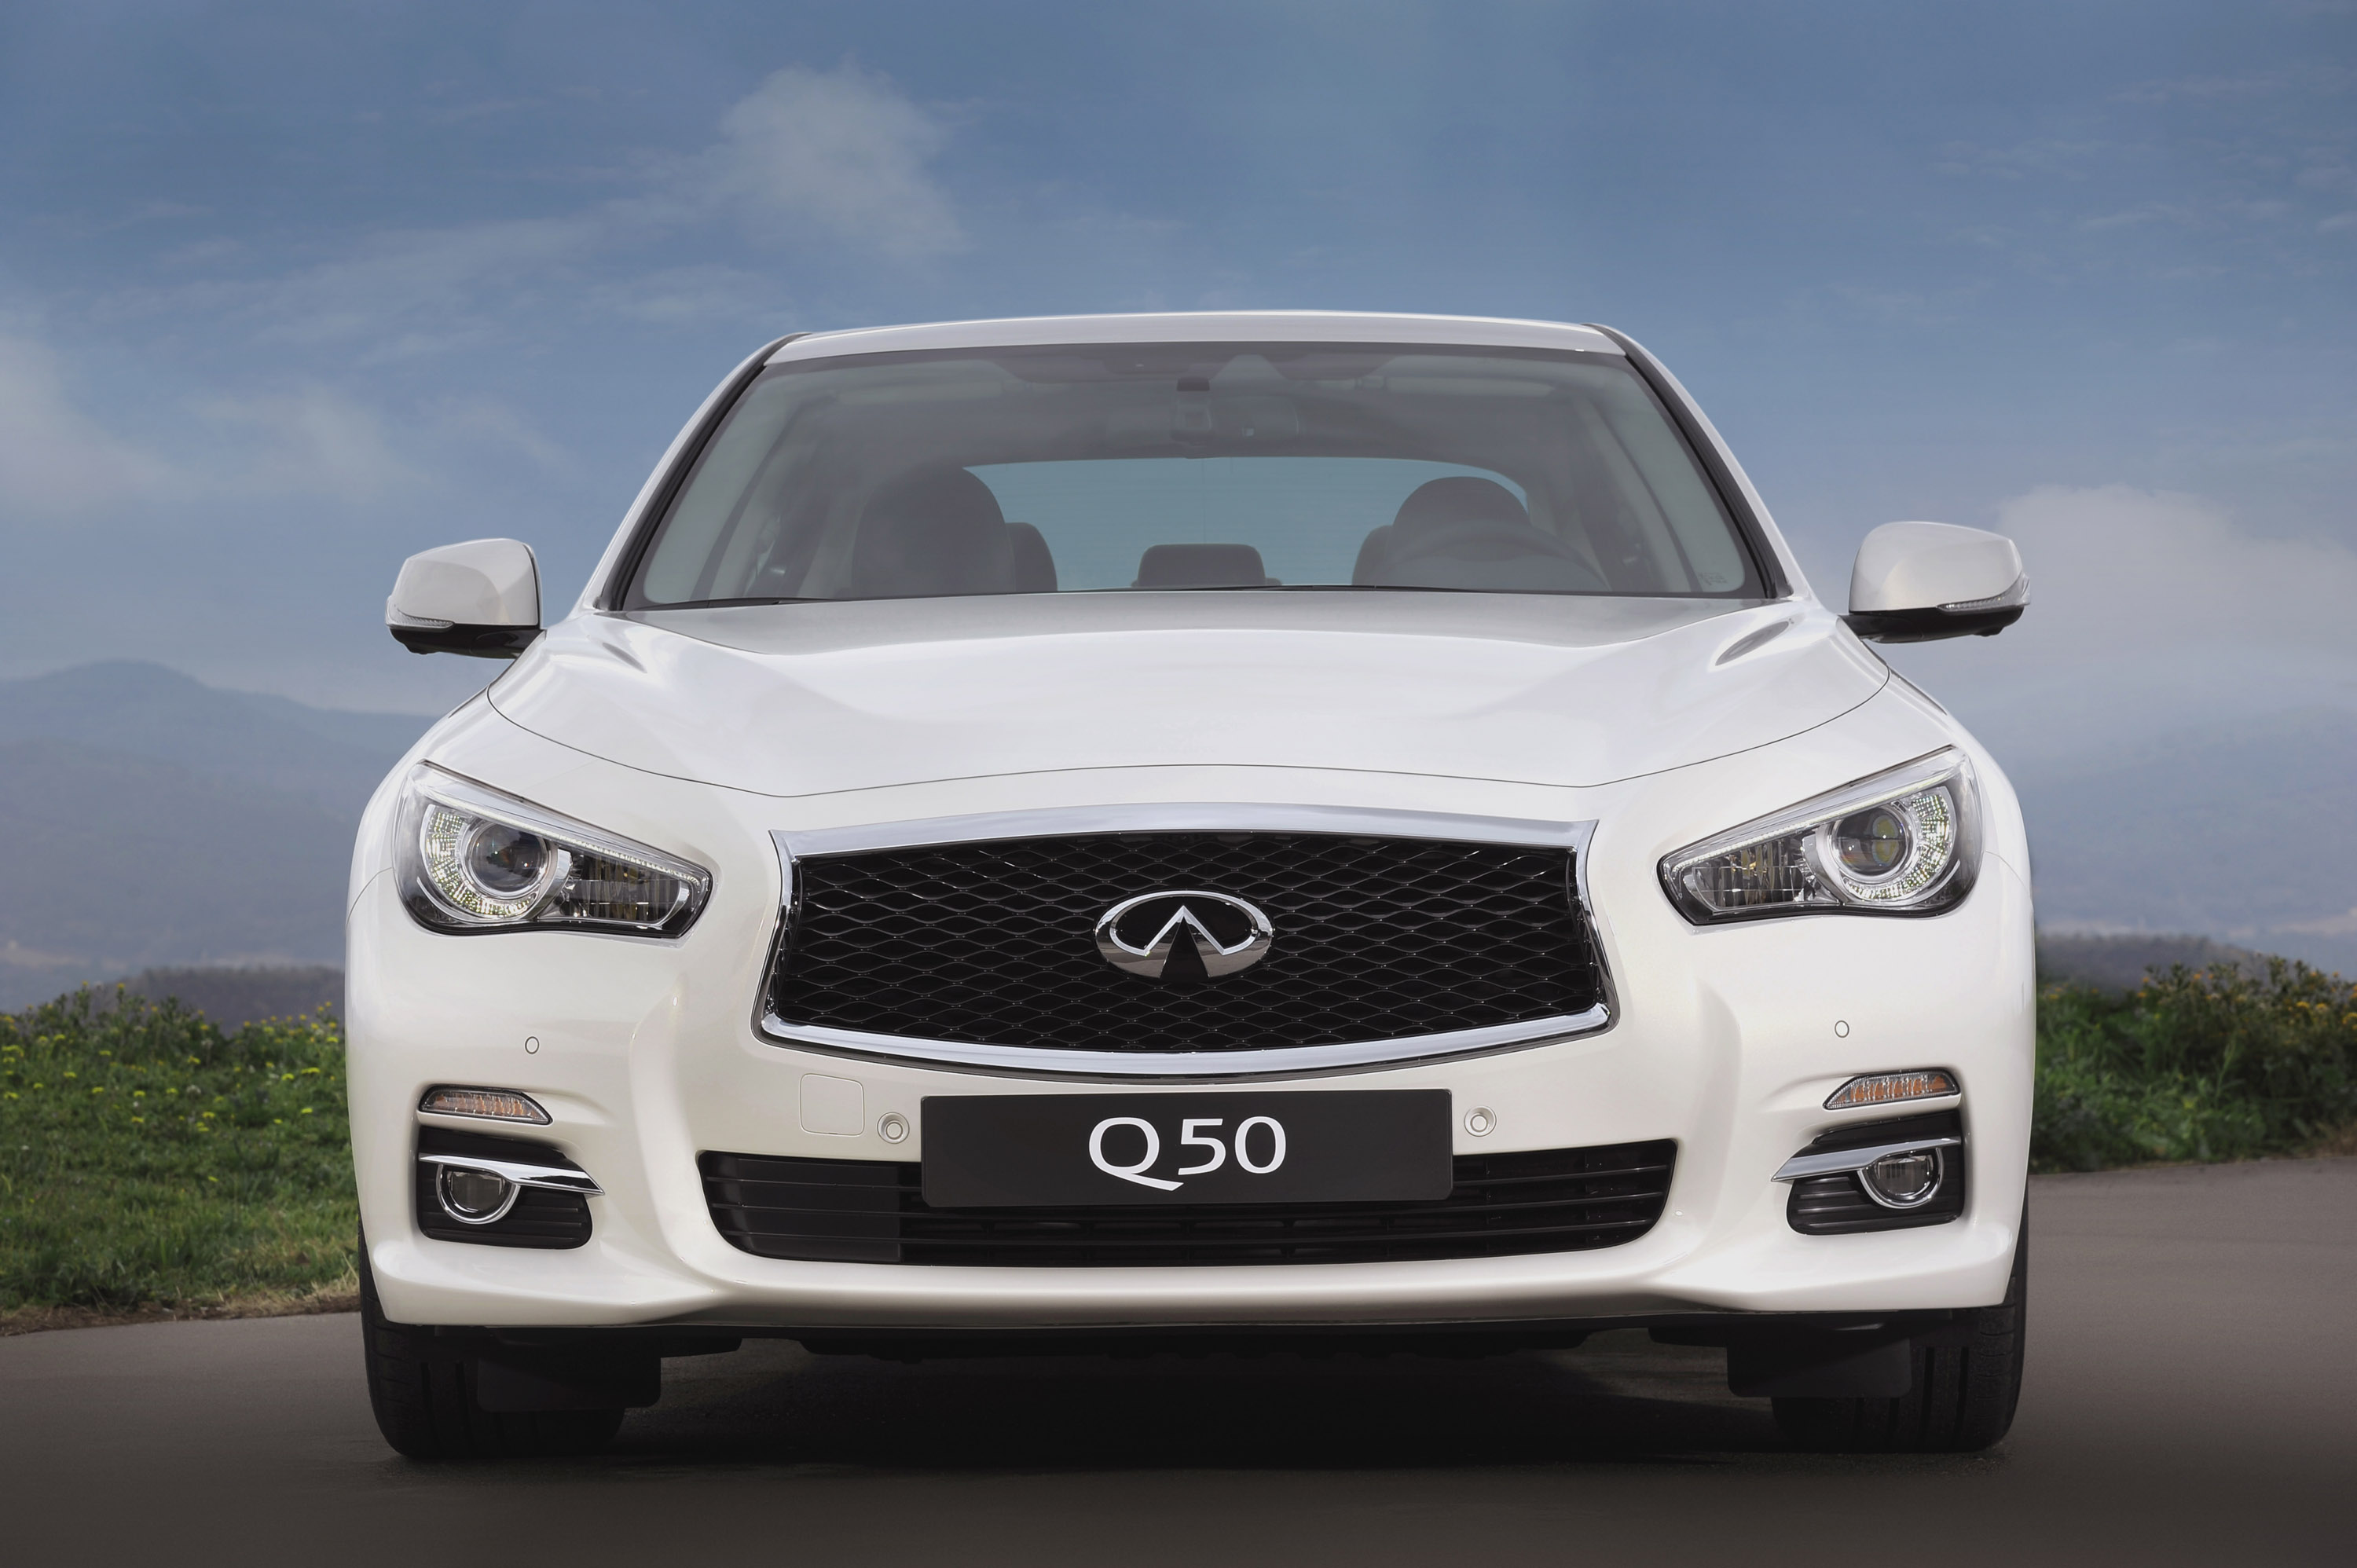 2014 infiniti q50 the safest on the road. Black Bedroom Furniture Sets. Home Design Ideas